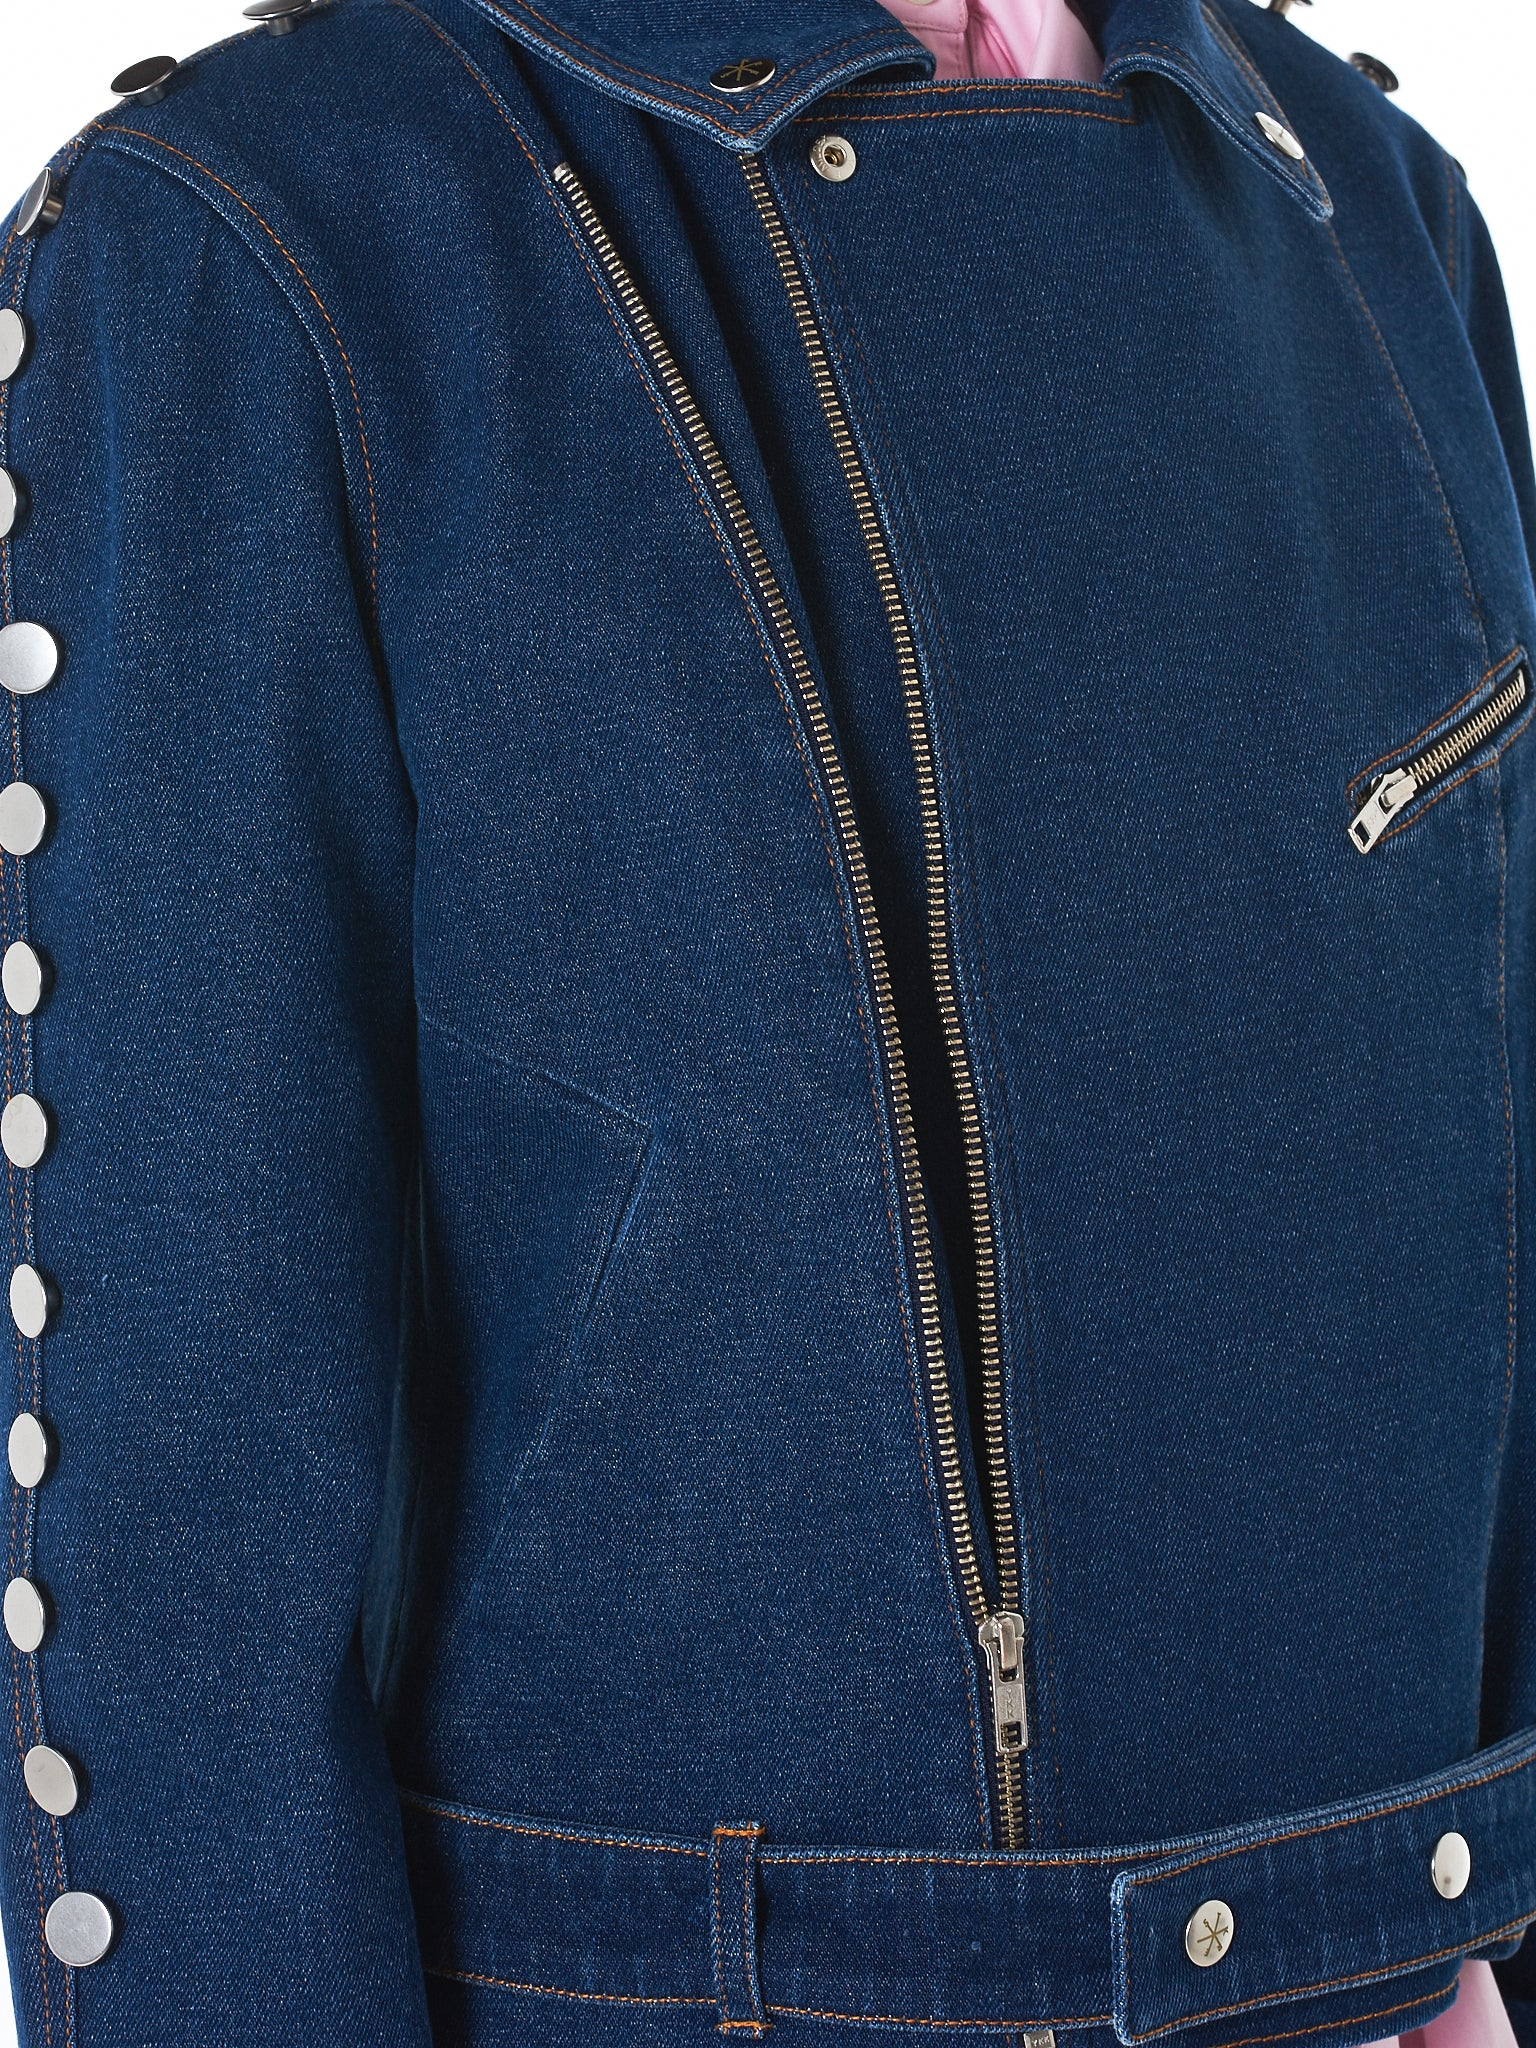 Riveted Biker Jacket (KRST-SS18-7-BLUE)